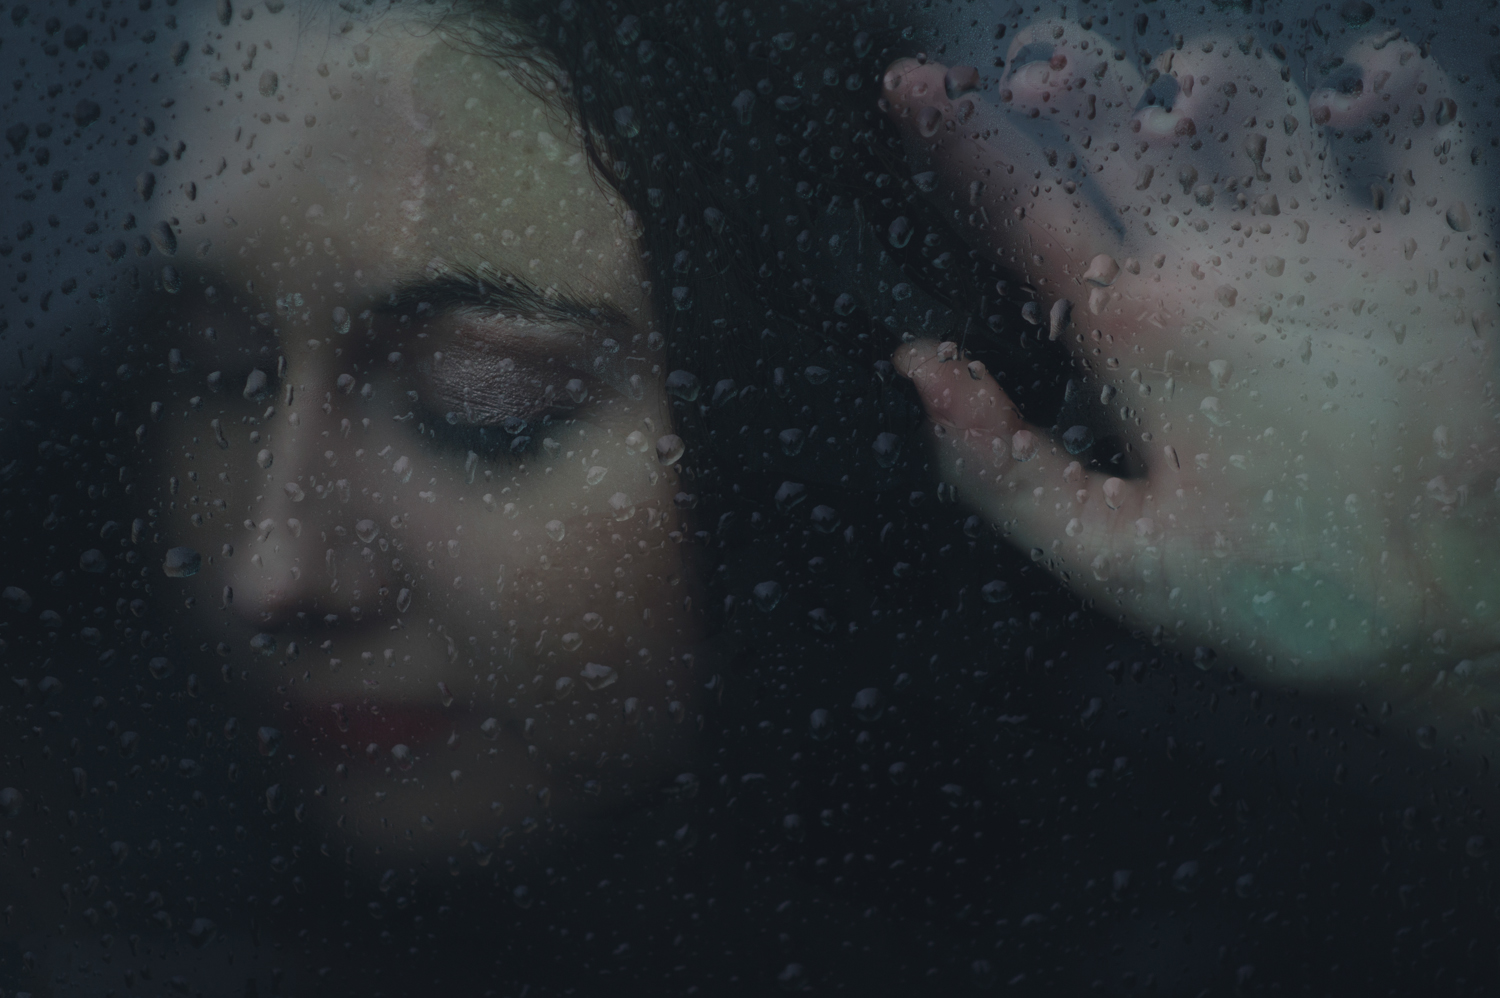 Frozen Memory - Dark Moody Rain & Glass Portraiture